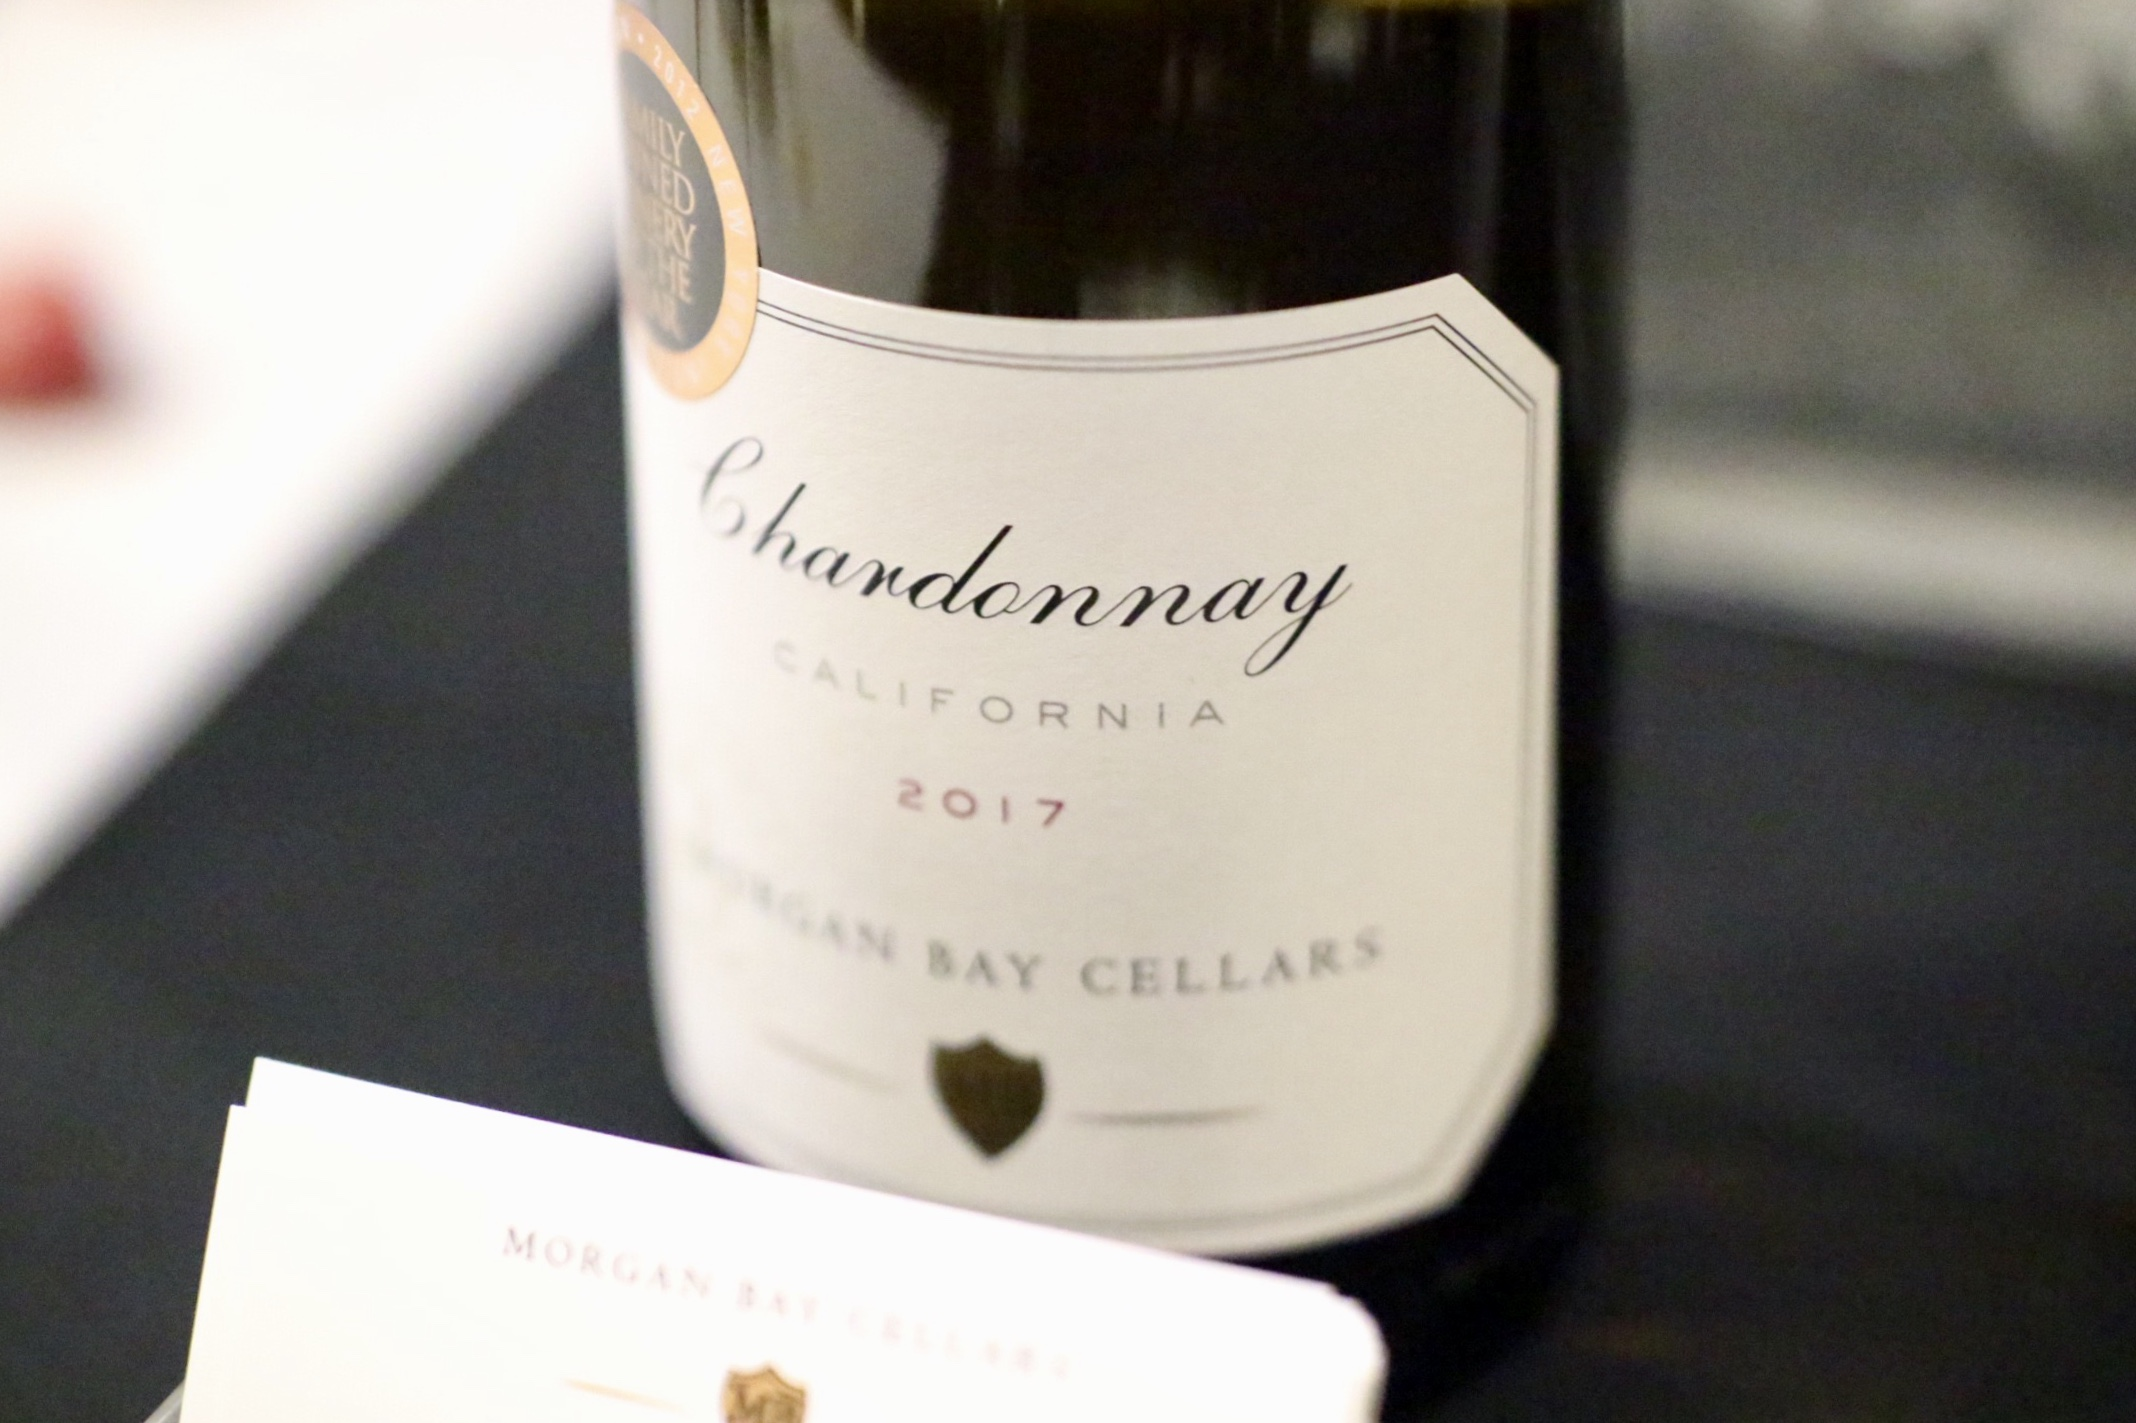 Morgan Bay California Chardonnay 2017